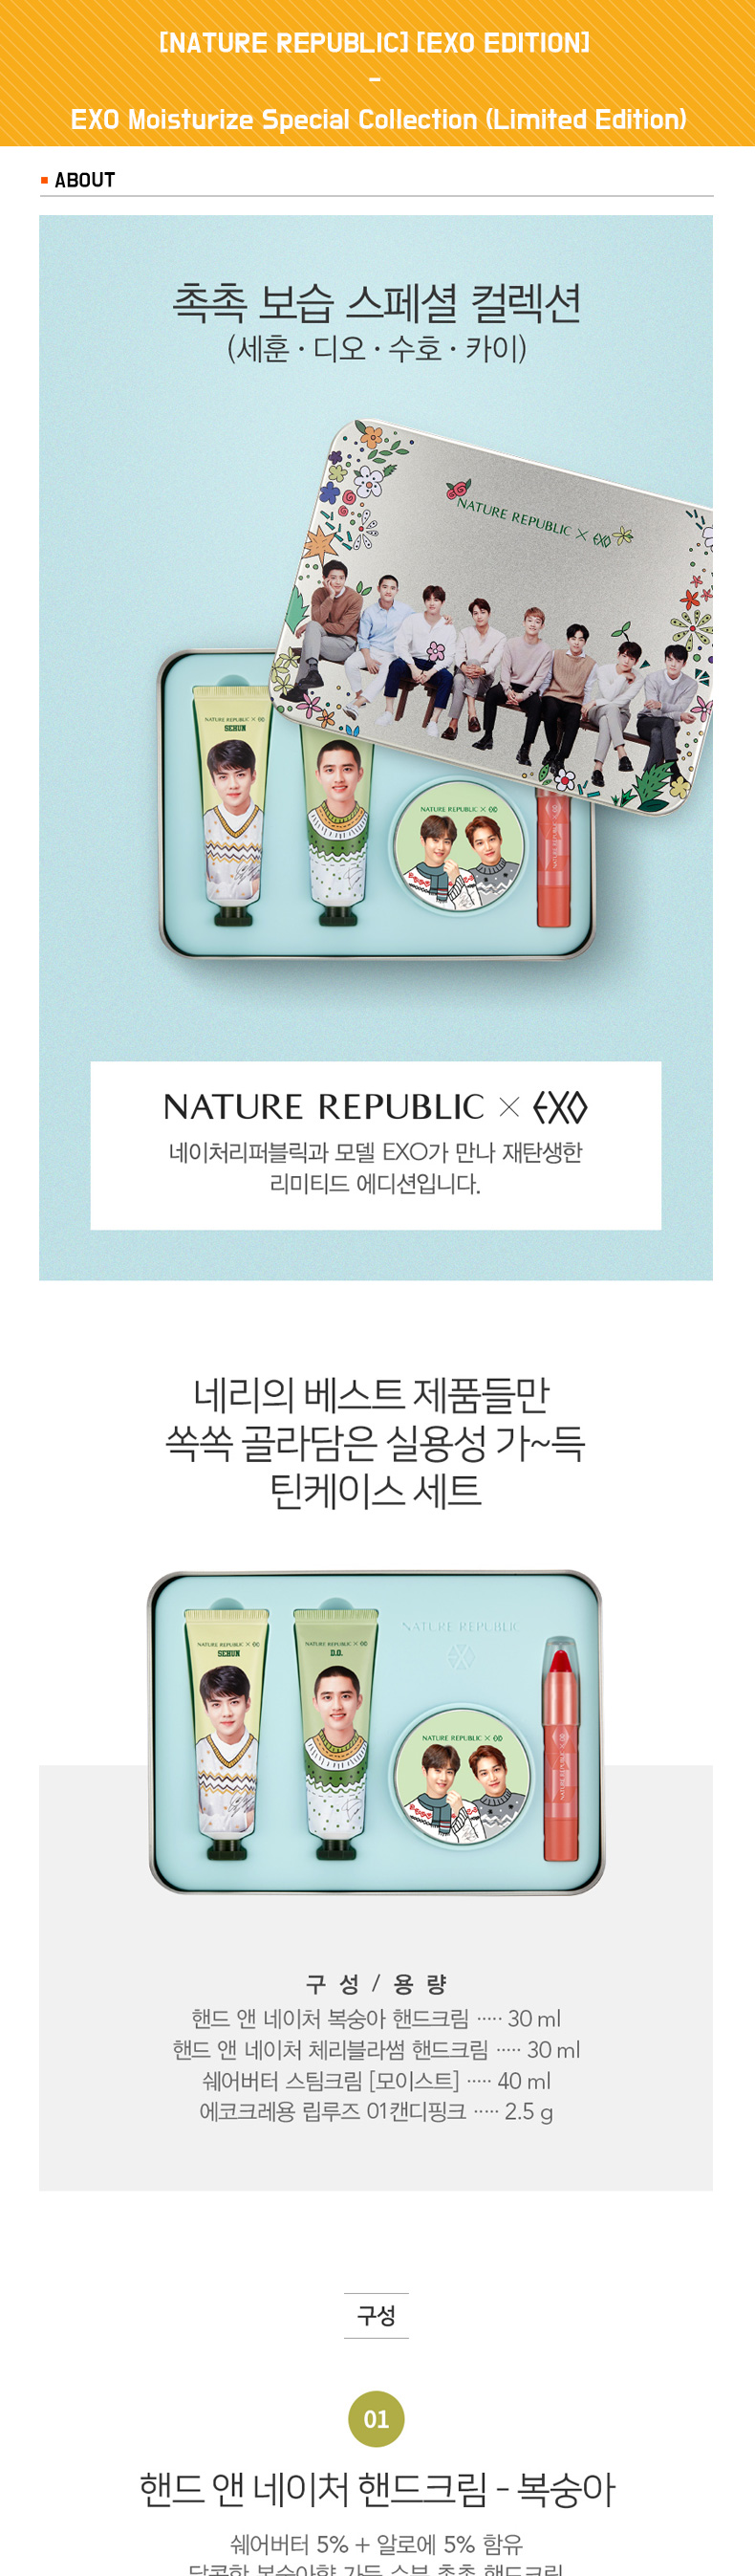 EXO 保湿套装限量版 [NATURE REPUBLIC] [EXO EDITION] - EXO Moisturize Special Collection (Limited Edition)